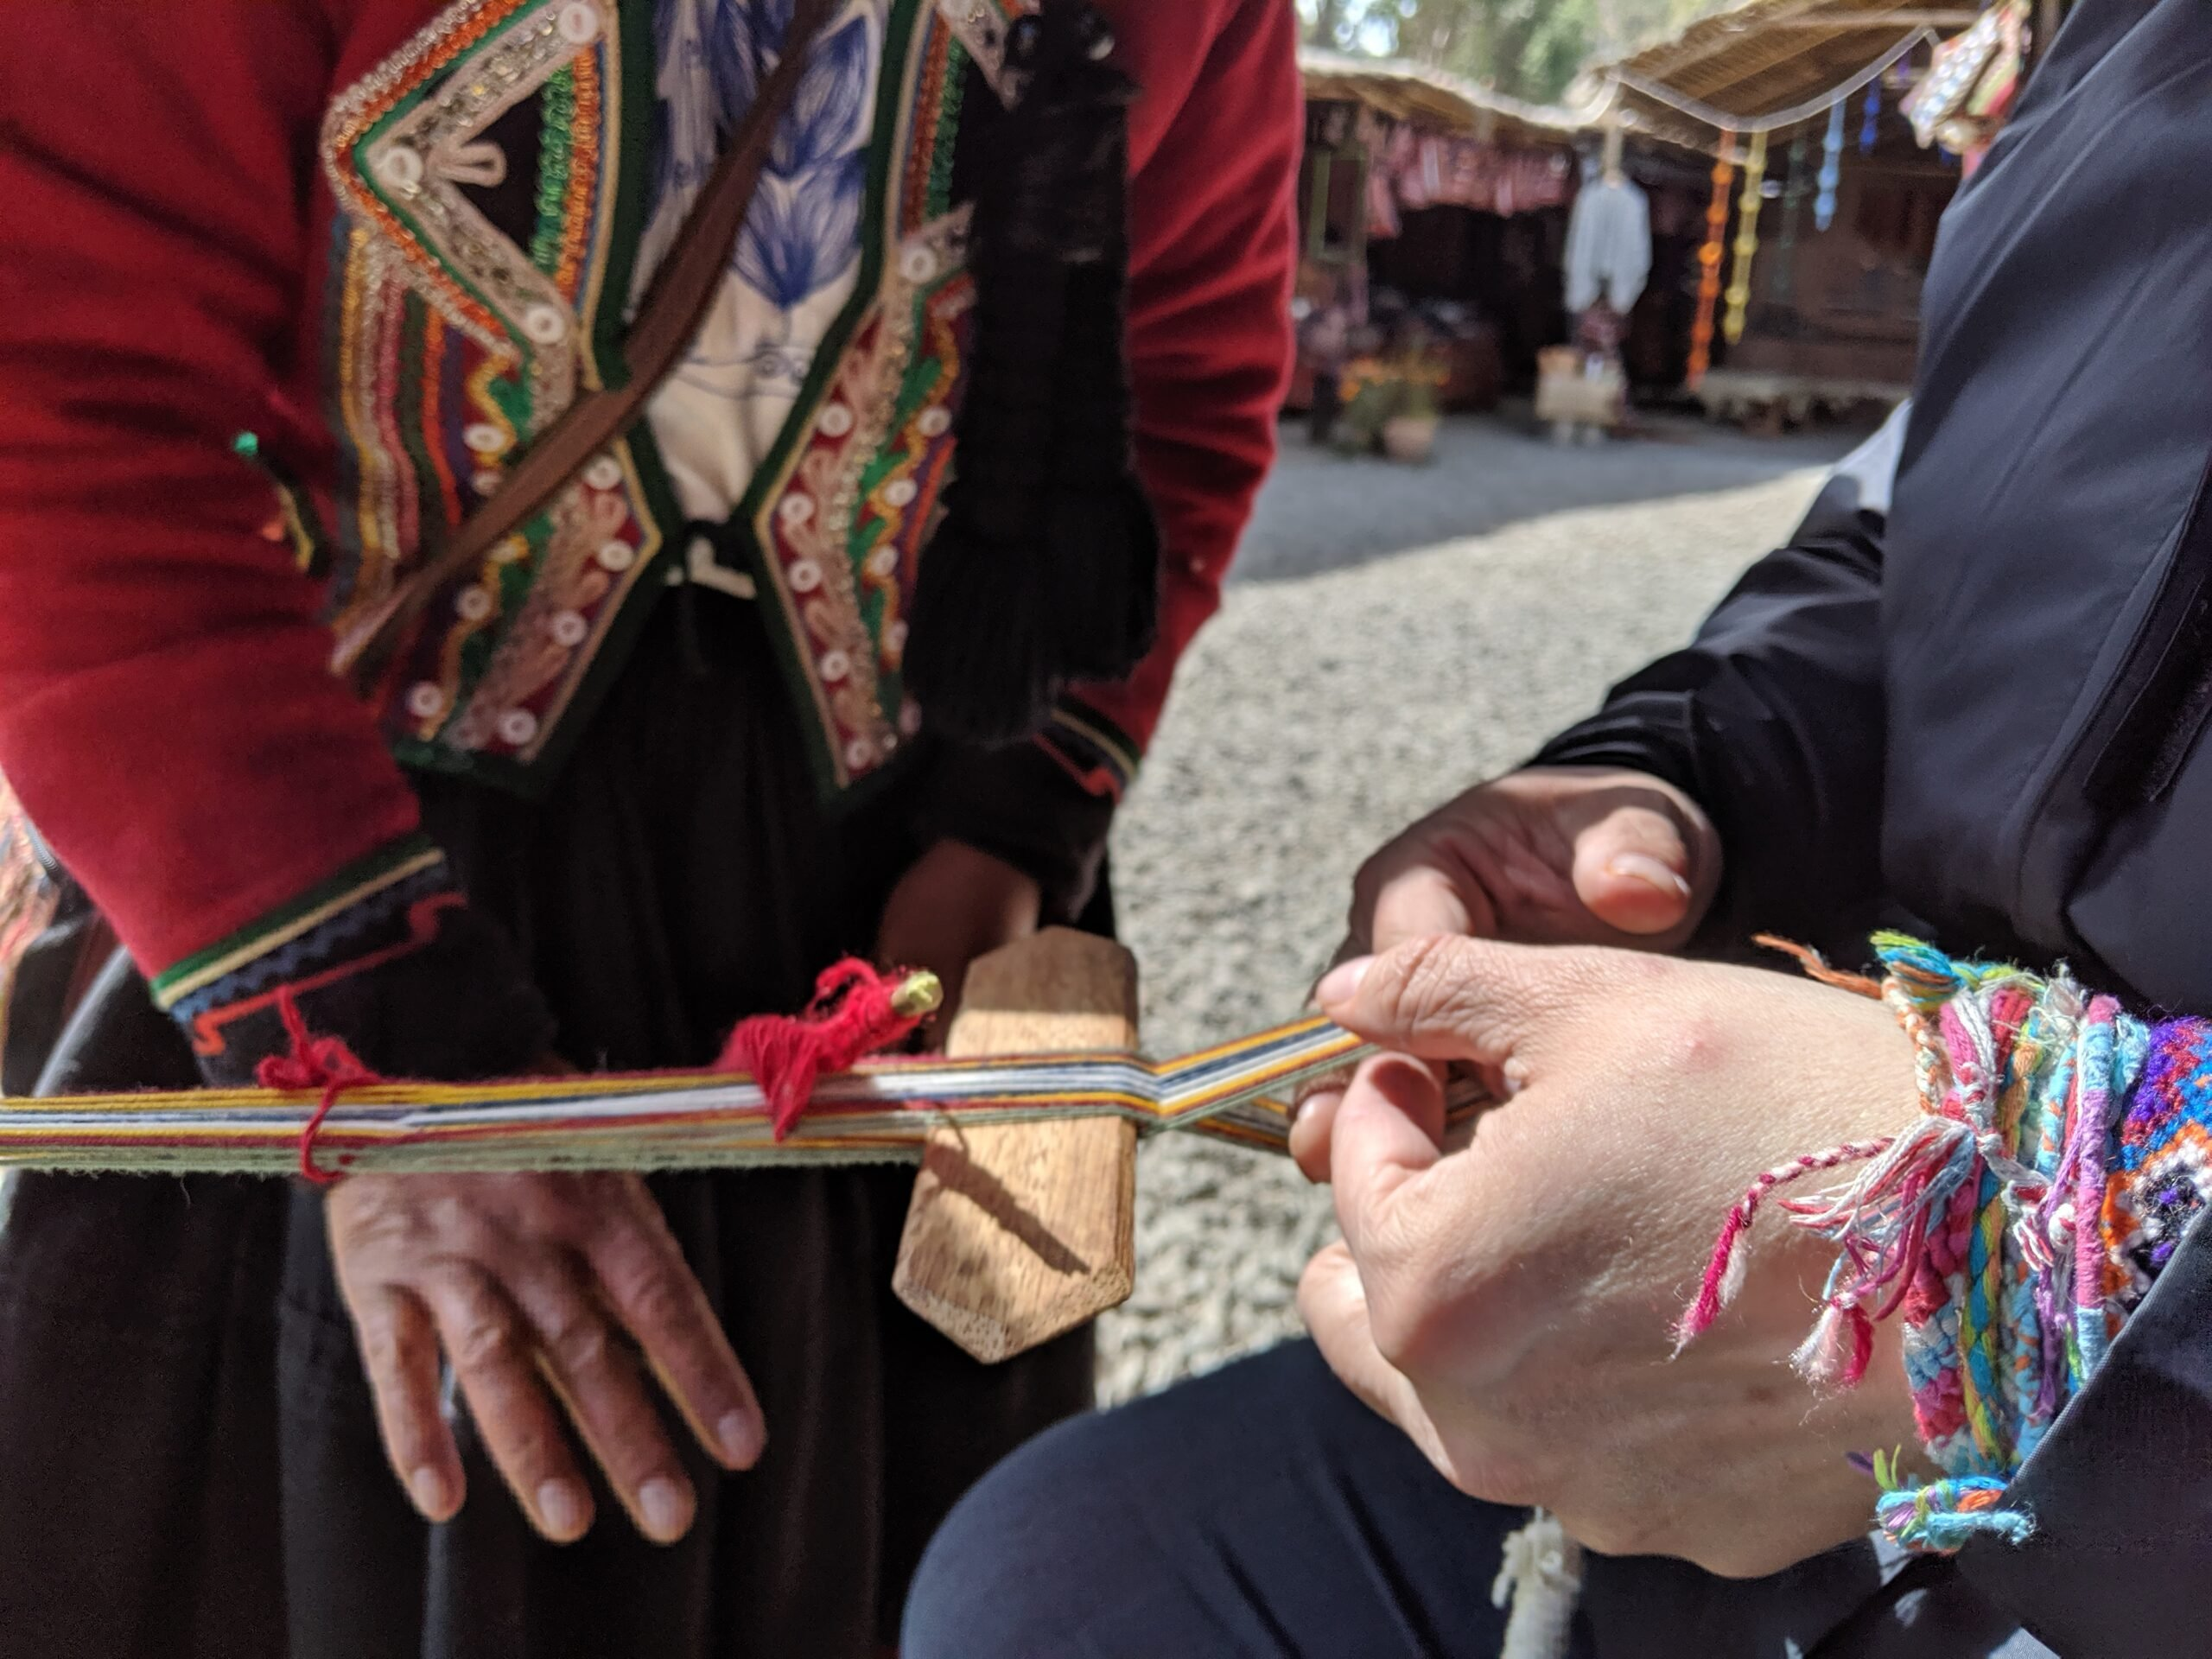 A close-up of hands of a tourist weaving under the instruction of a professional weaver.